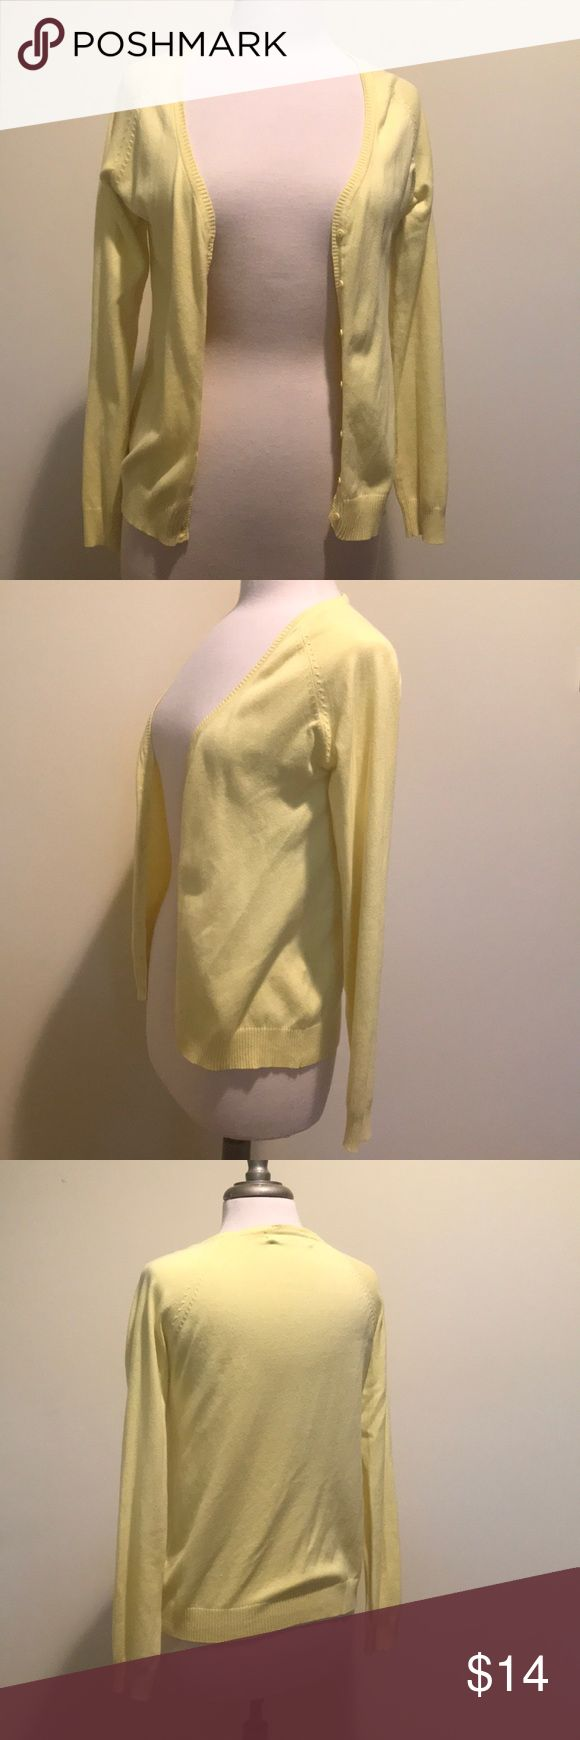 Zara yellow cardigan Zara Yellow/lemon cardigan, with 7 small buttons. Used in good condition. Size L Zara Sweaters Cardigans